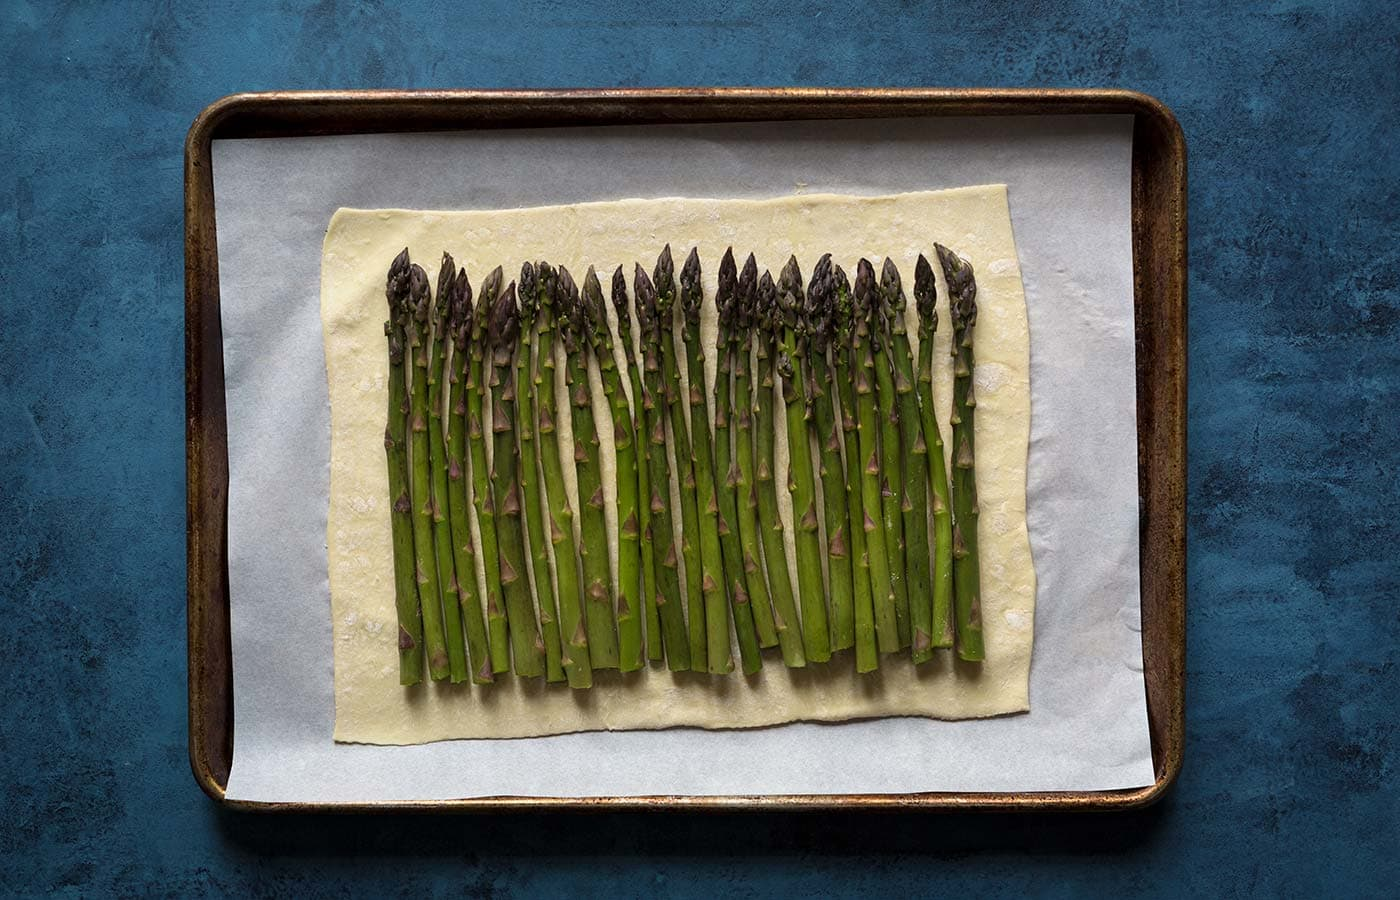 This asparagus egg tart comes together quickly with a few simple ingredients, and is perfect for spring and summer gatherings! Get the recipe from Savory Simple.